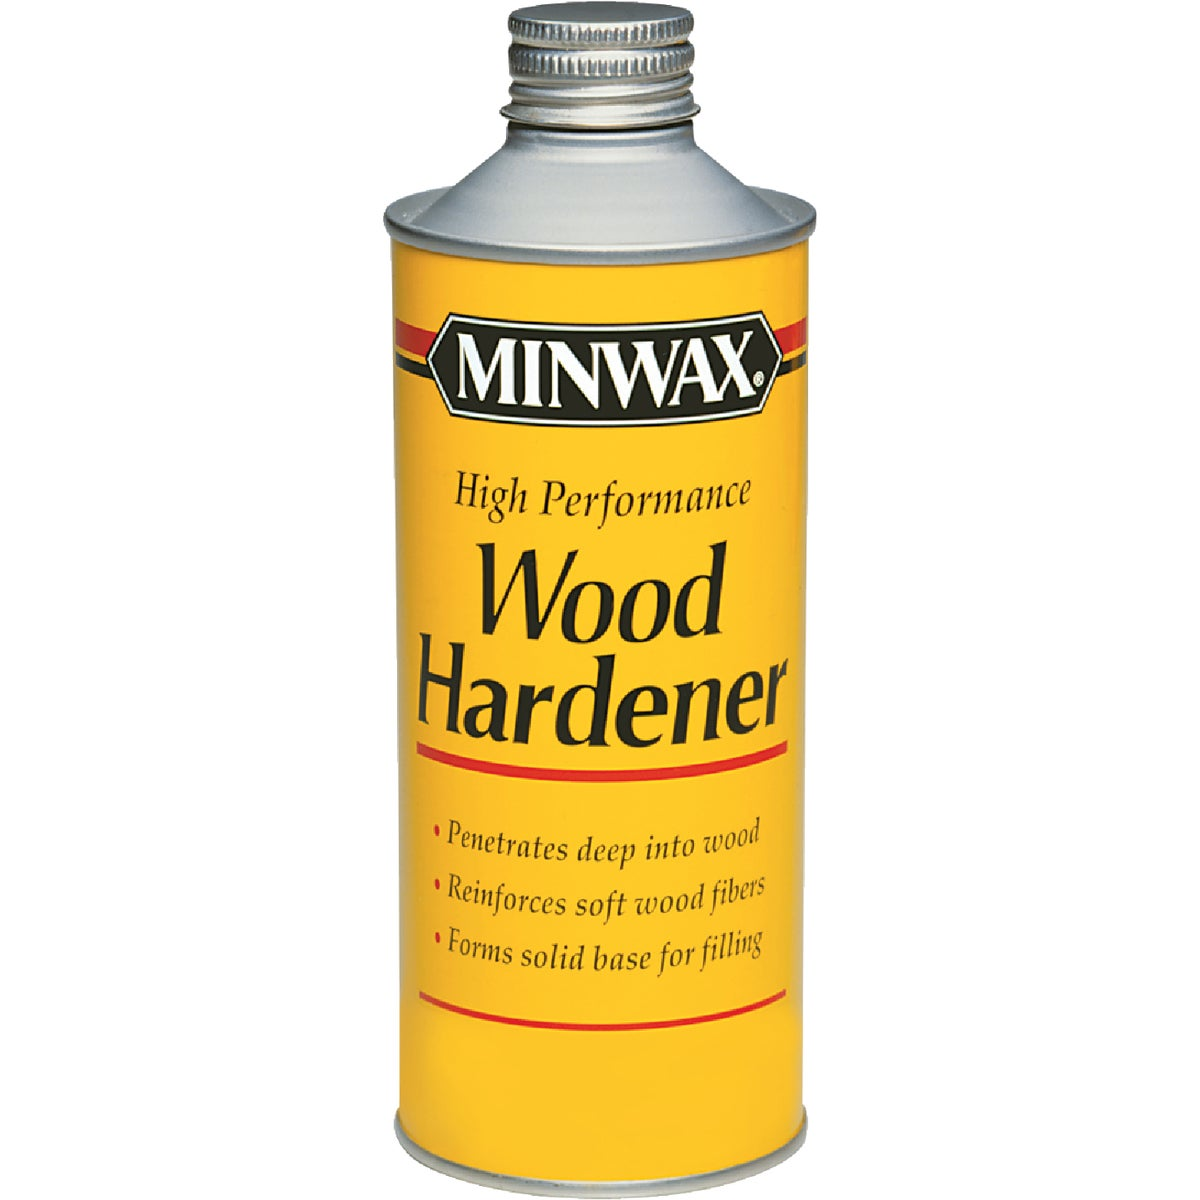 LIQUID WOOD HARDENER - 41700 by Minwax Company